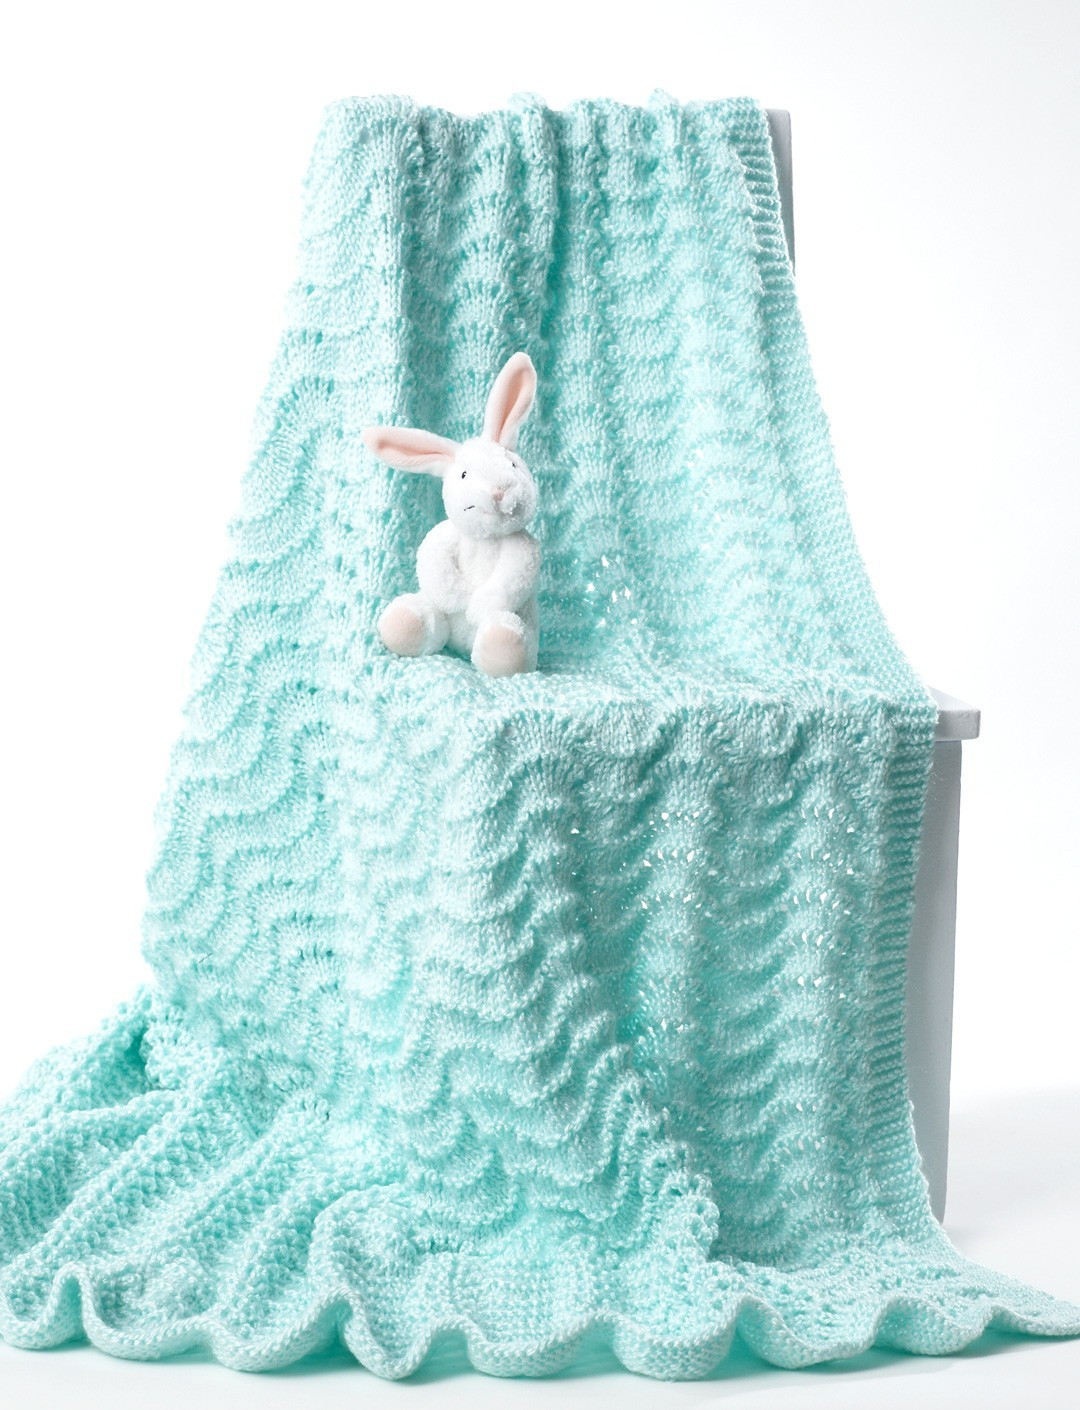 Bernat softee Baby Patterns Awesome Knit Baby Blanket In Bernat softee Baby solids Of Brilliant 45 Ideas Bernat softee Baby Patterns